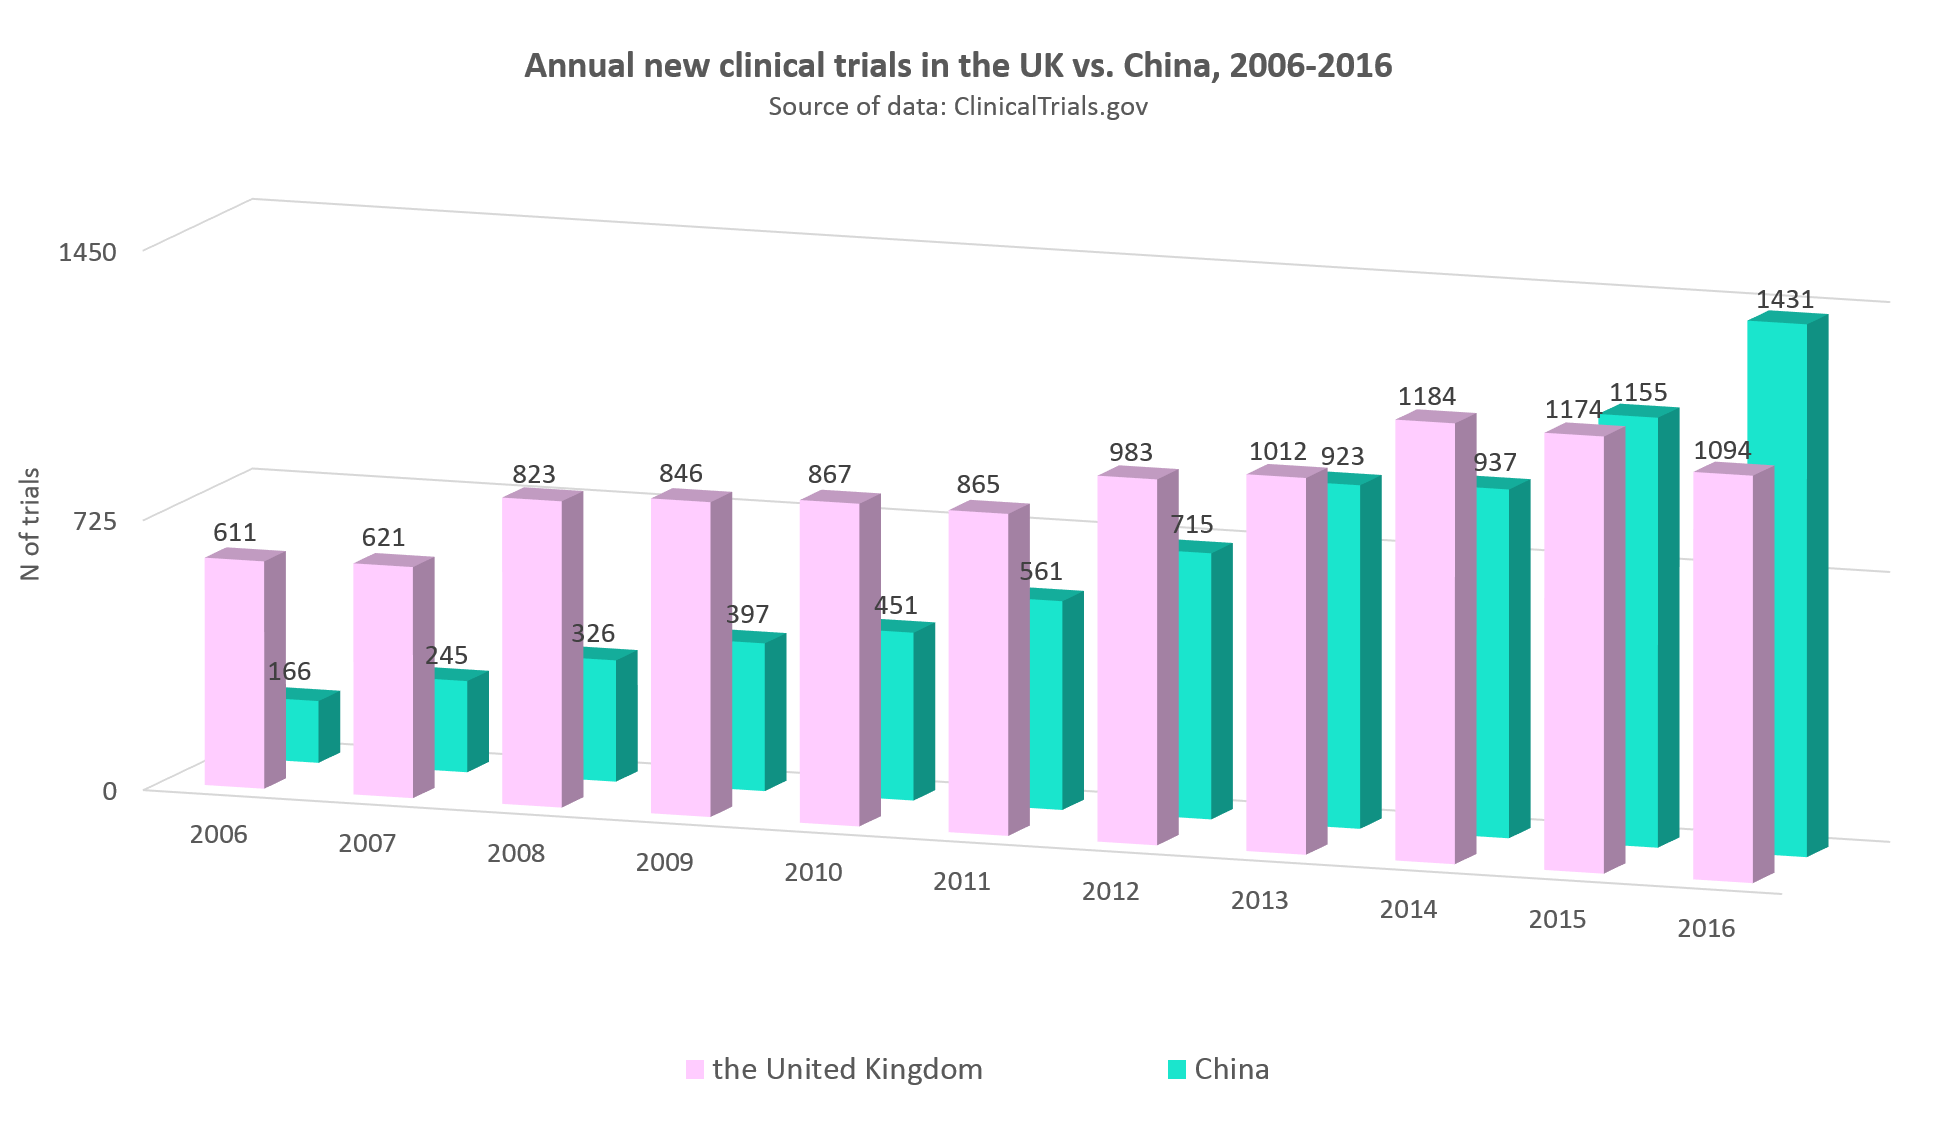 Annual statistics of clinical trials in the United Kingdom vs. China, 2006-2016